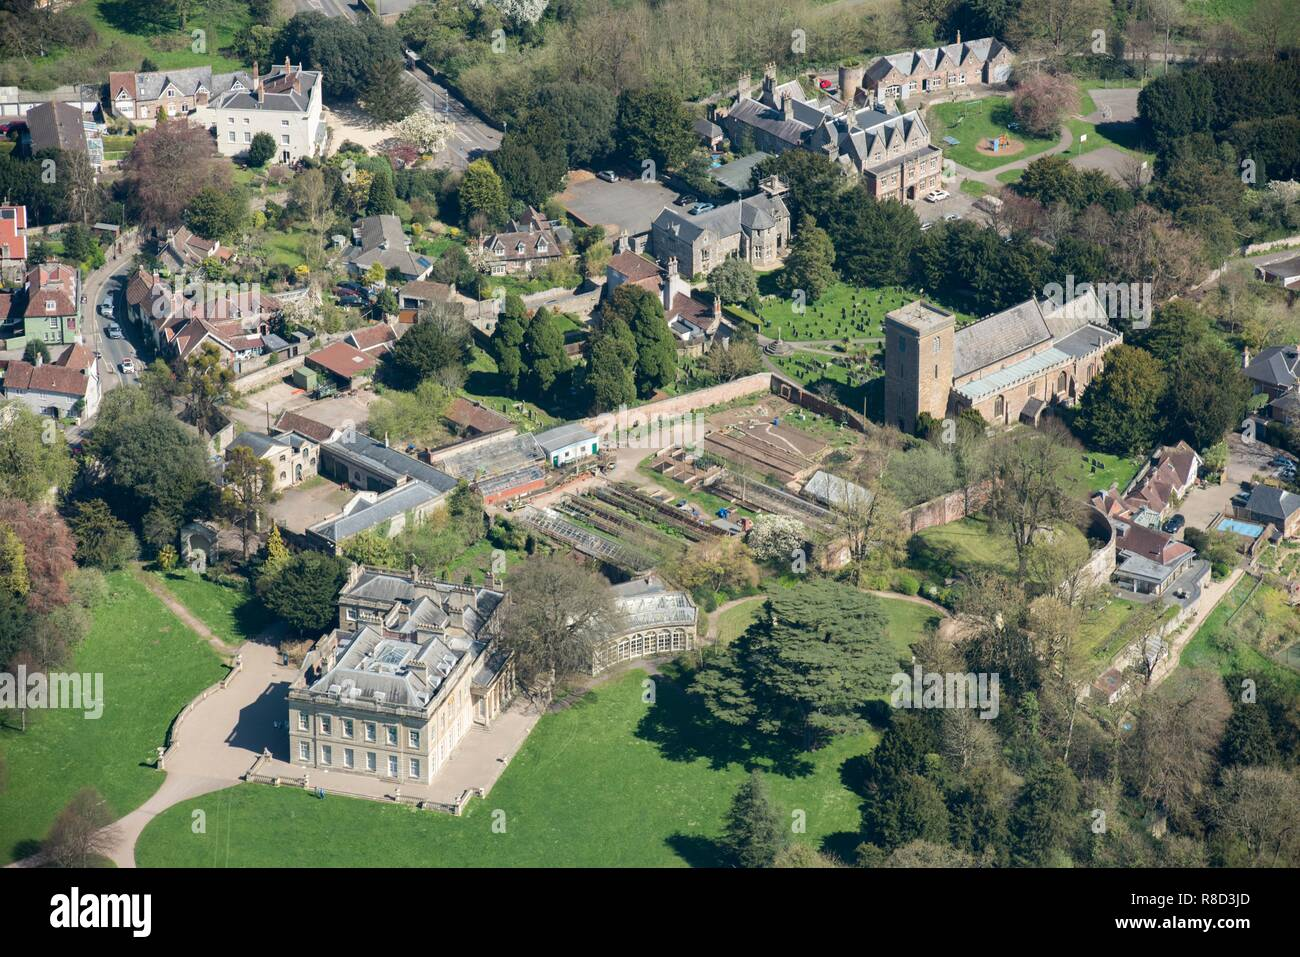 Blaise Castle House, Henbury, Bristol, 2018. Blaise Castle House was built in 1766. The gardens contain a Grade II listed folly castle. The surrounding park was designed by Humphry Repton in the early 19th century. - Stock Image